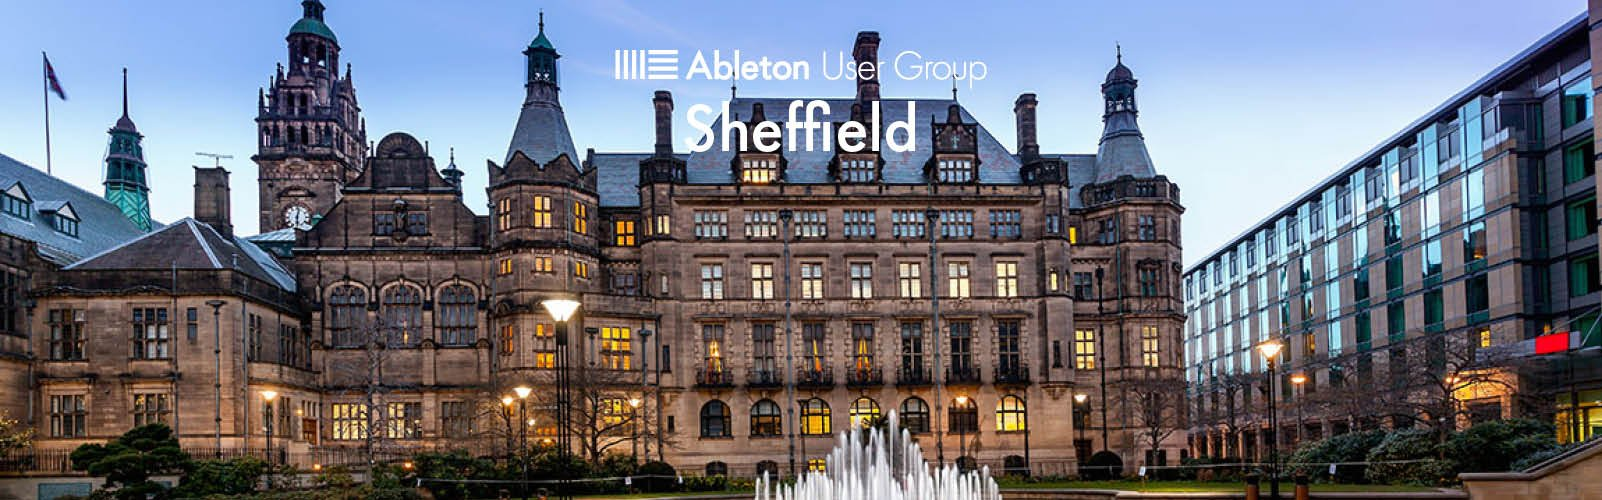 Sheffield Ableton User Group Banner.jpg